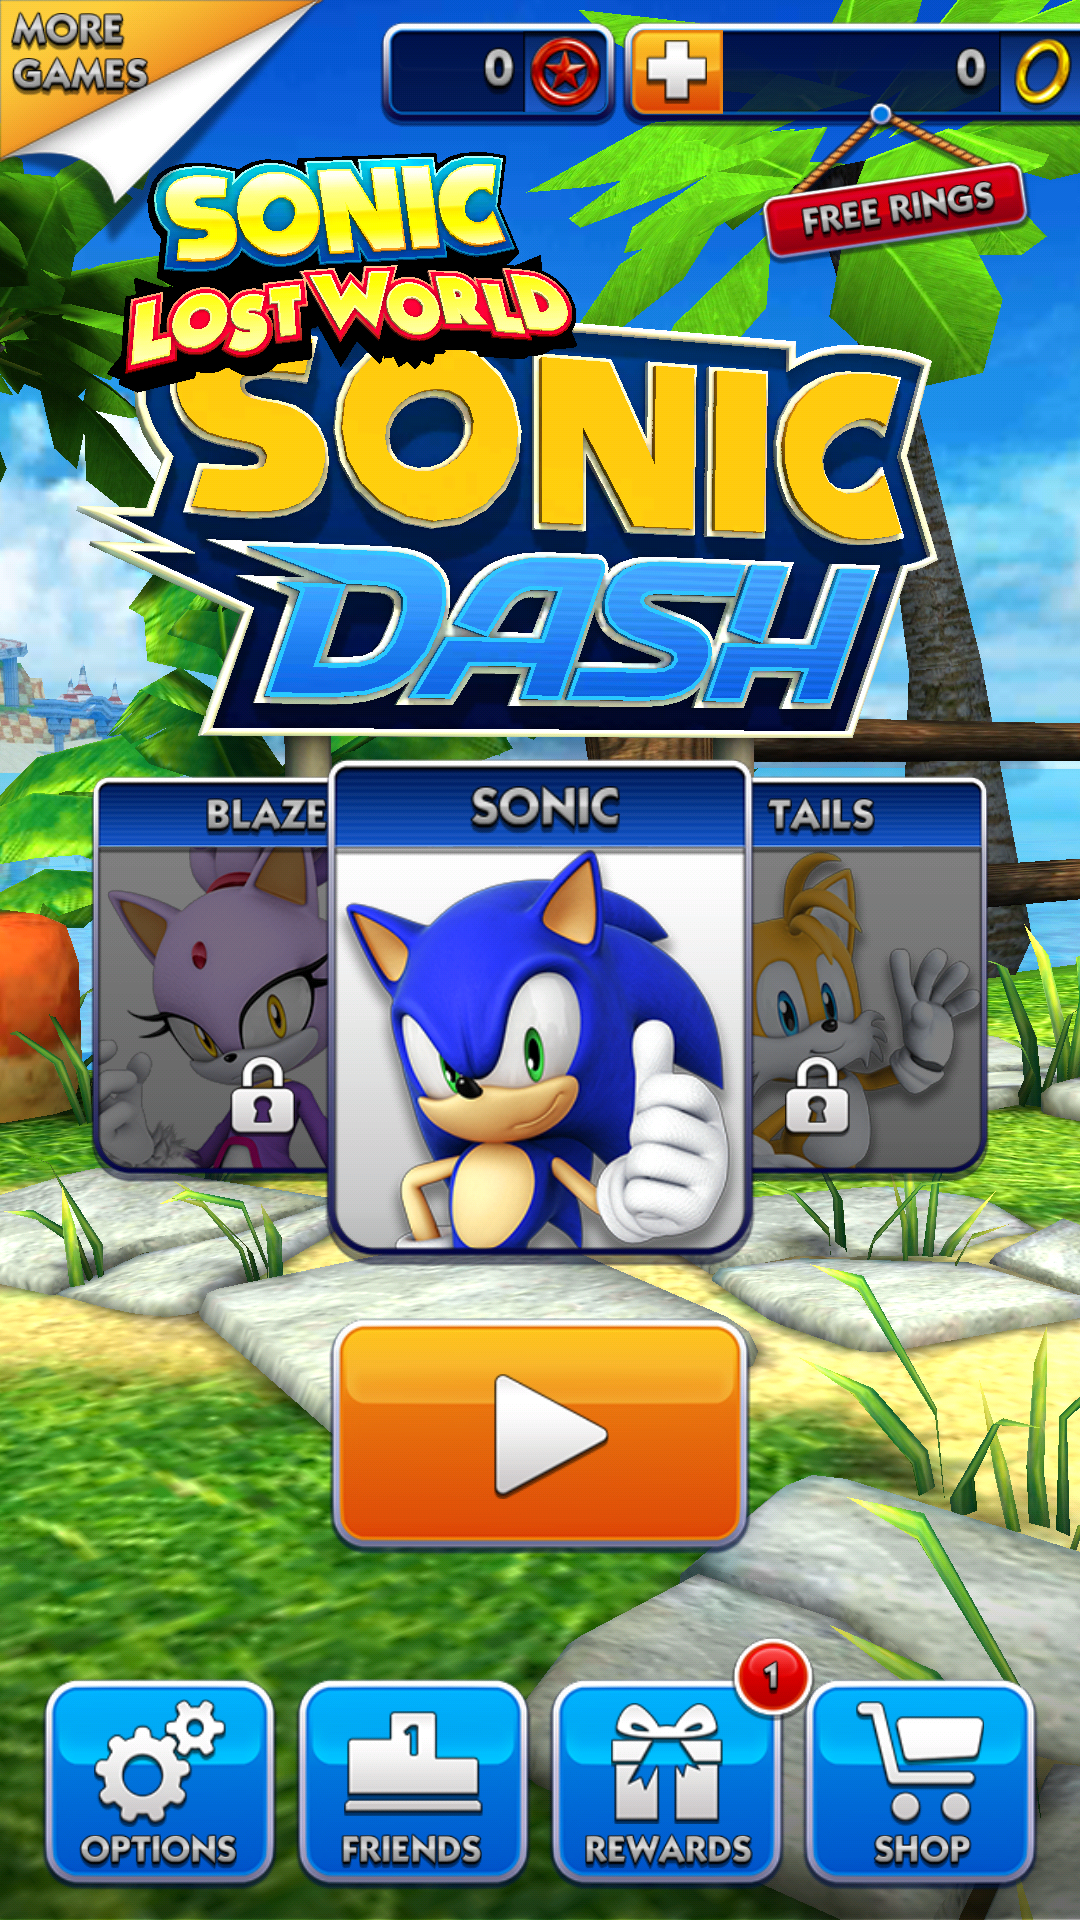 Sonic Dash - Review